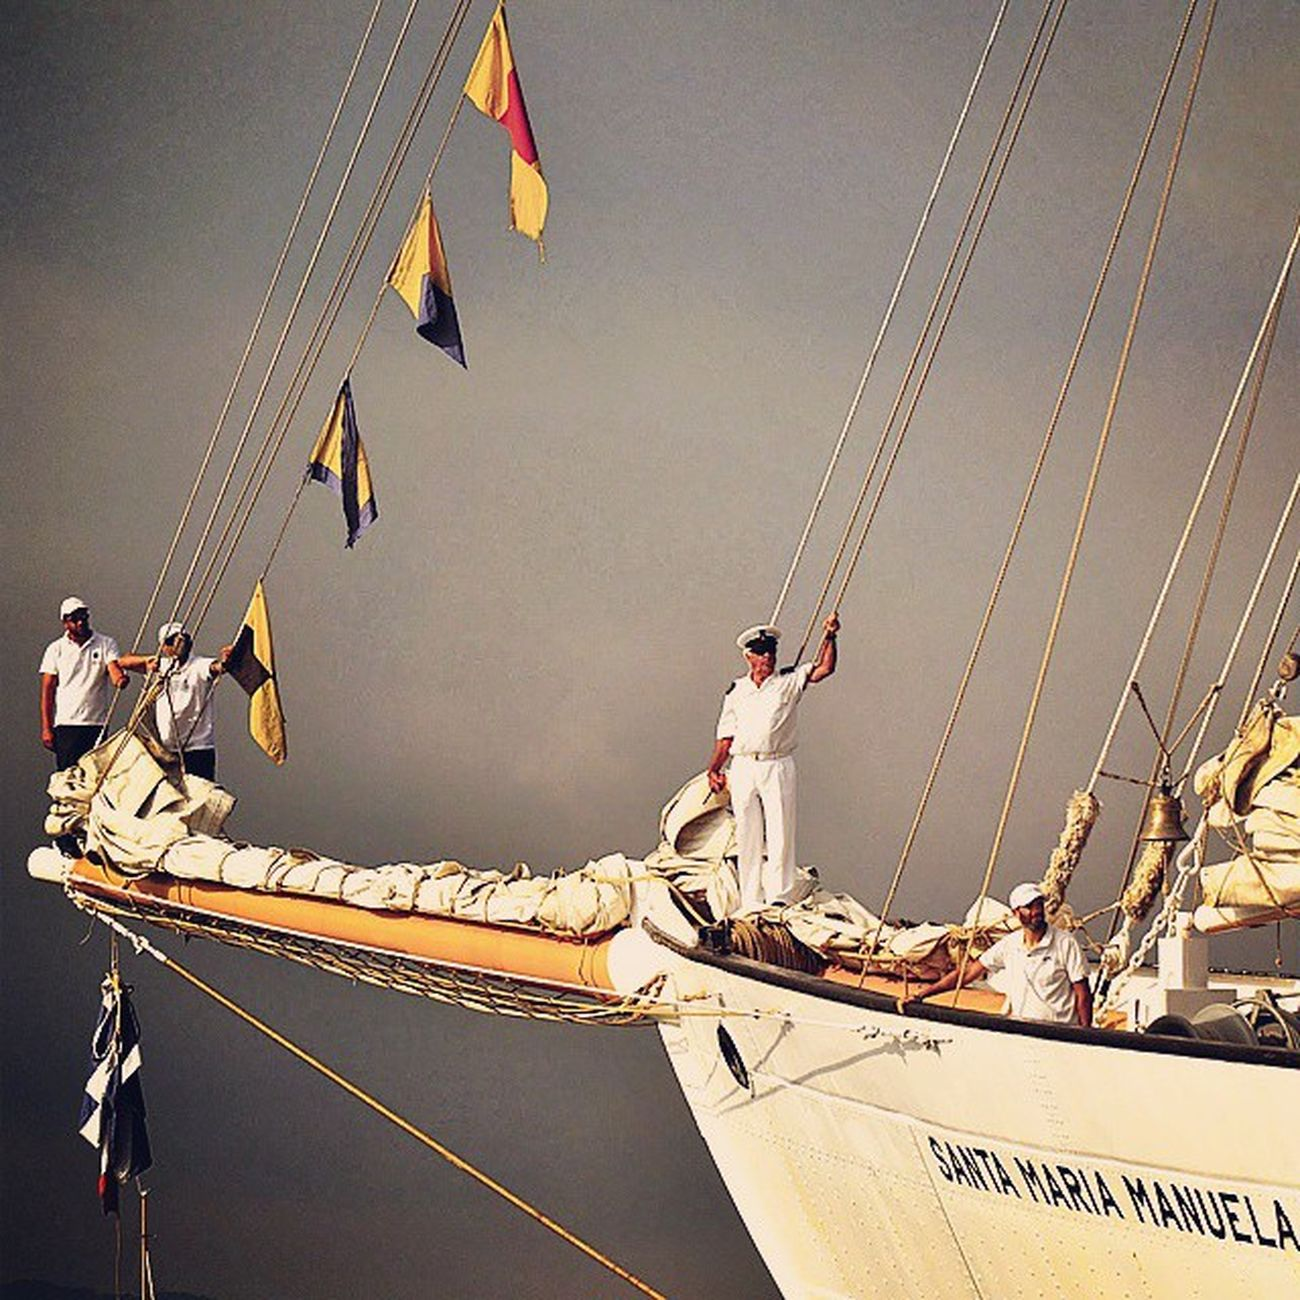 Tall ships regatta Toulon Igerstoulon Toulon Boat Ships Var Igerspaca Toulonforever